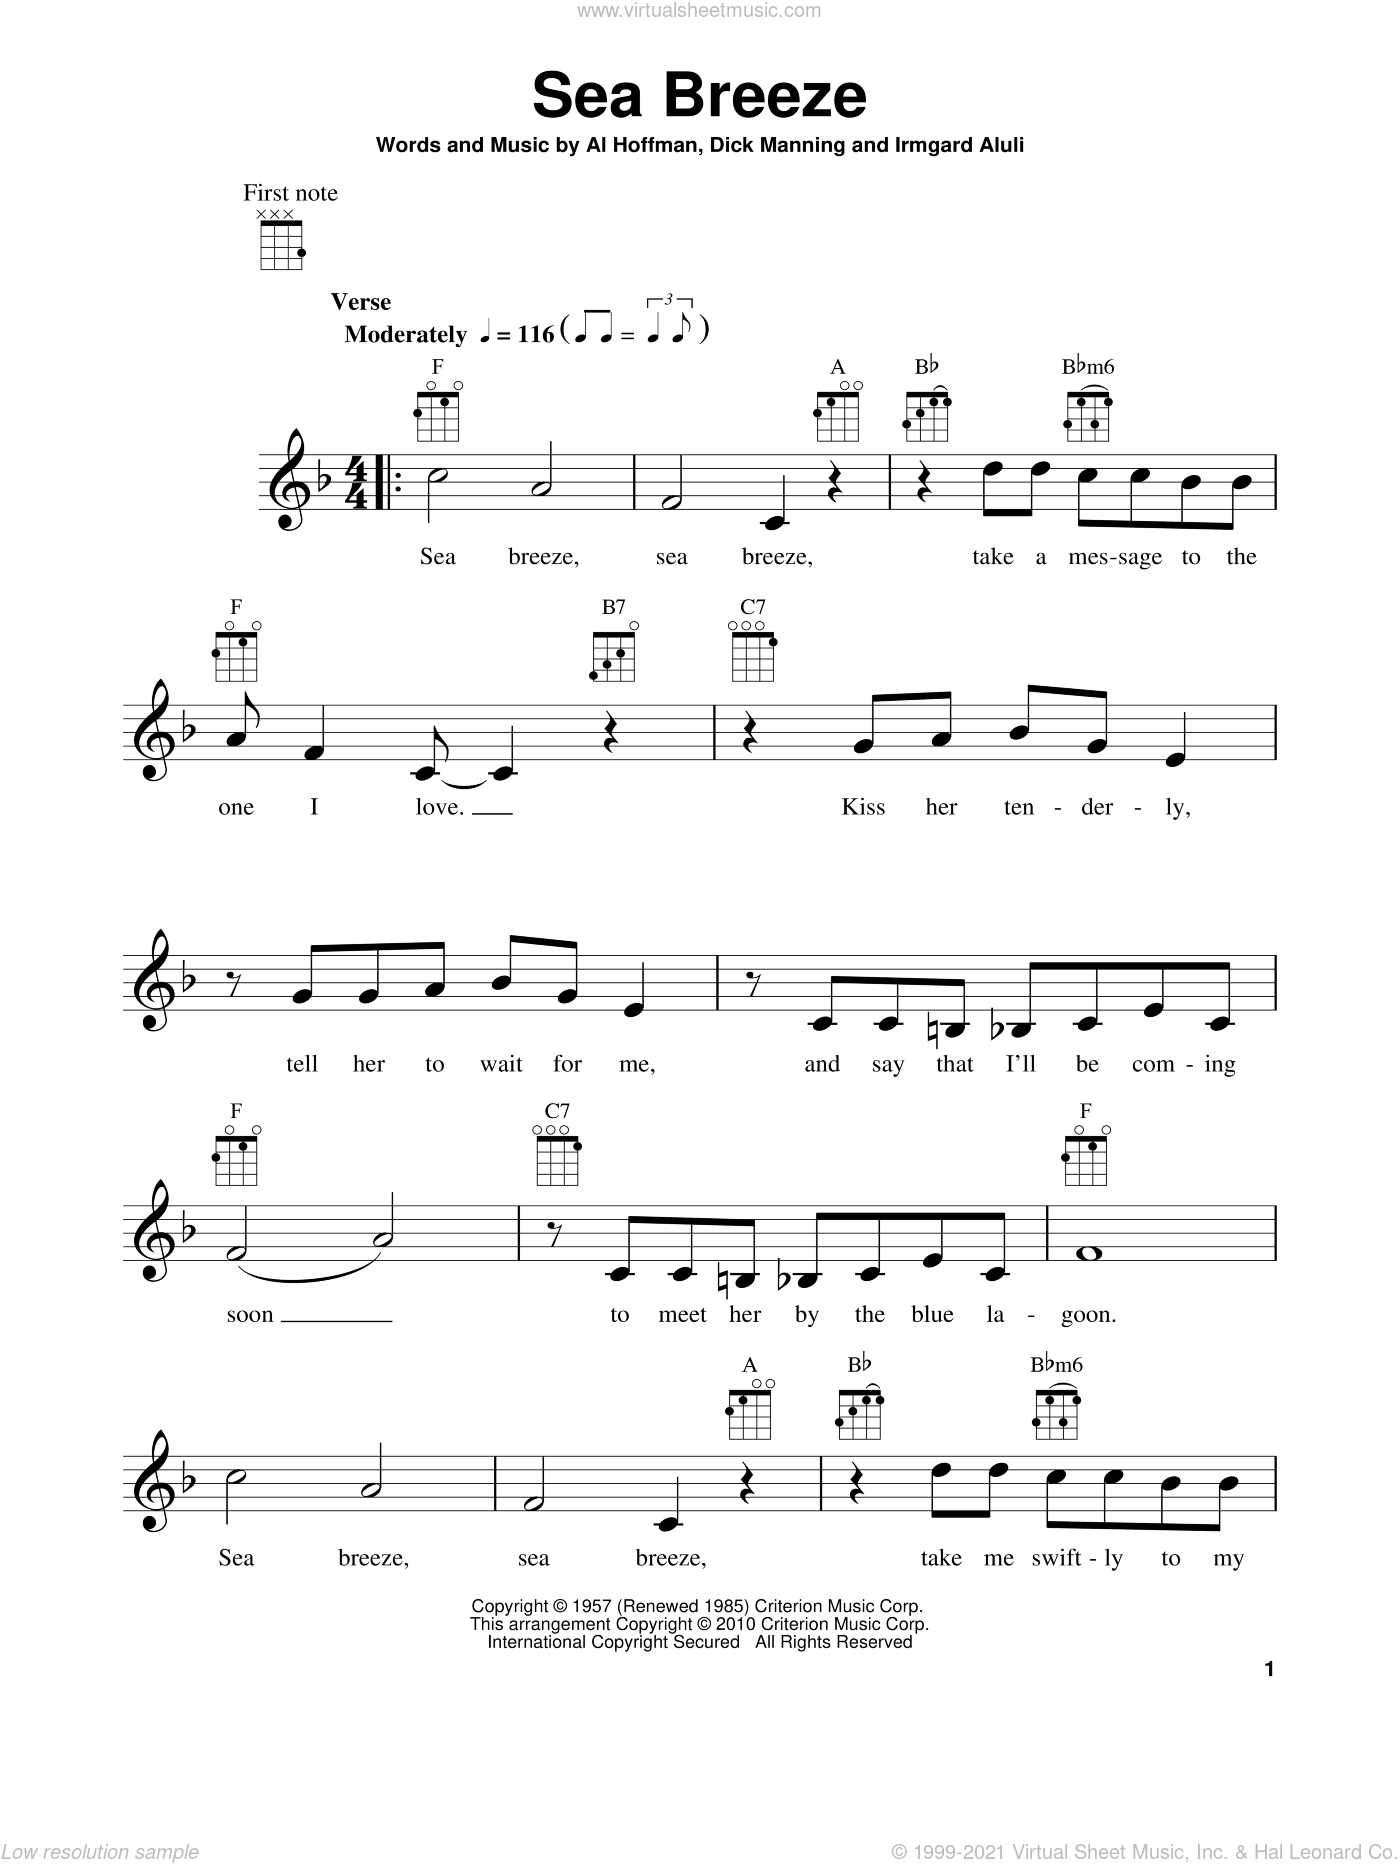 Sea Breeze sheet music for ukulele by Irmgard Aluli, Al Hoffman and Dick Manning. Score Image Preview.